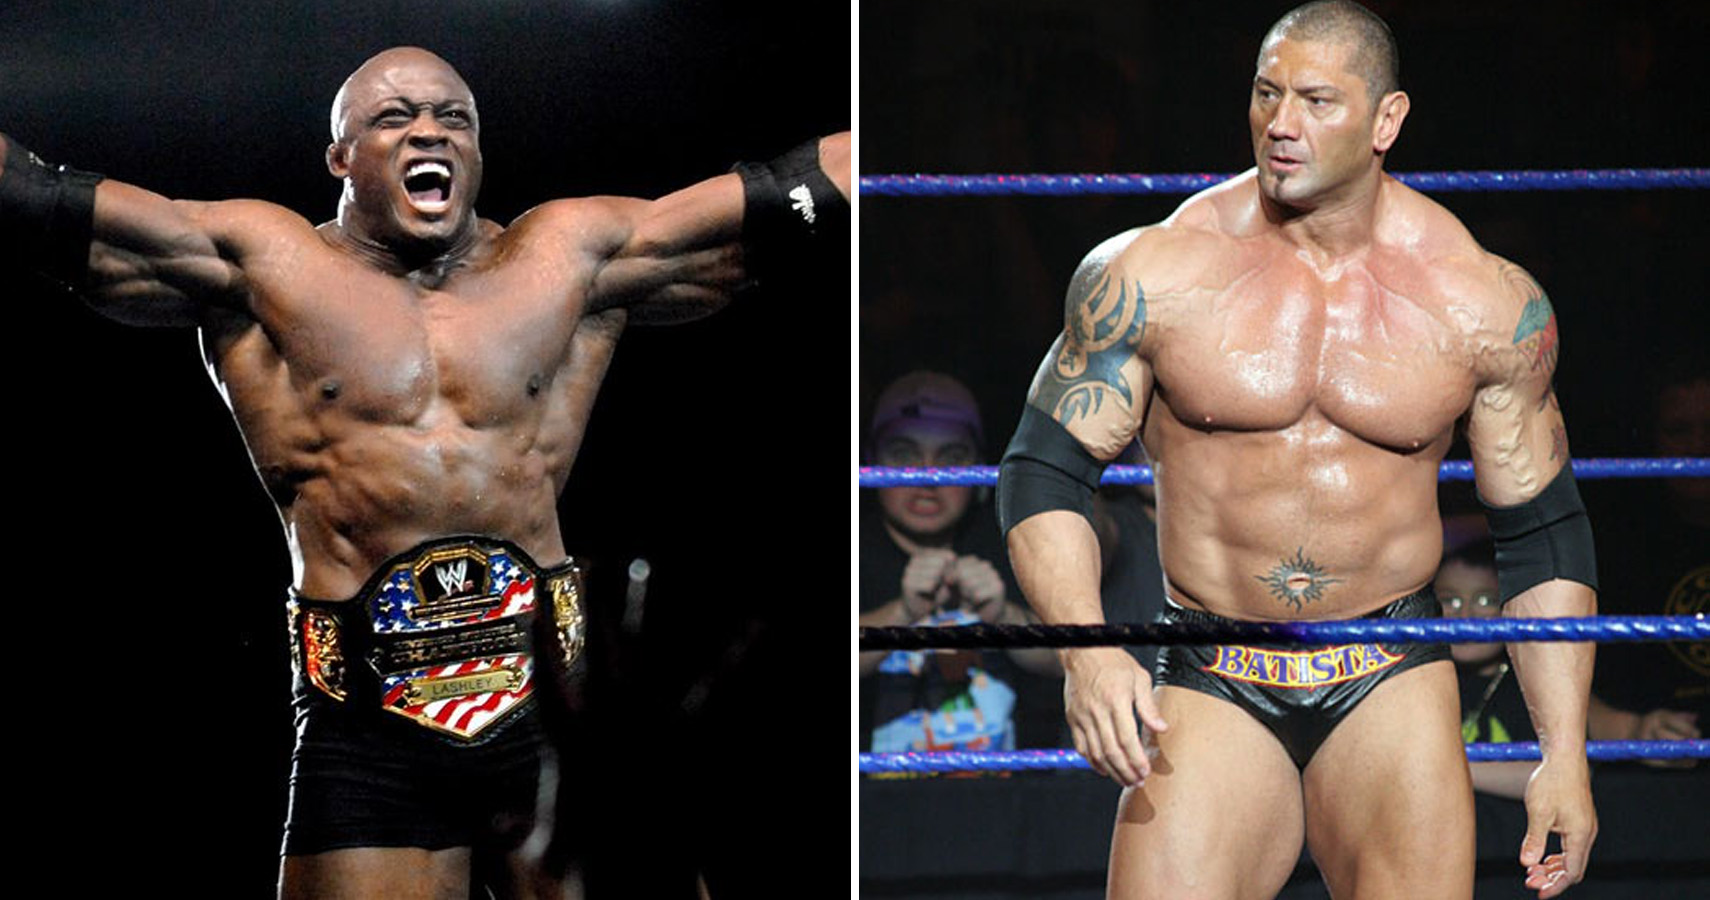 Wwe steroid users list 2012 when was steroids made illegal